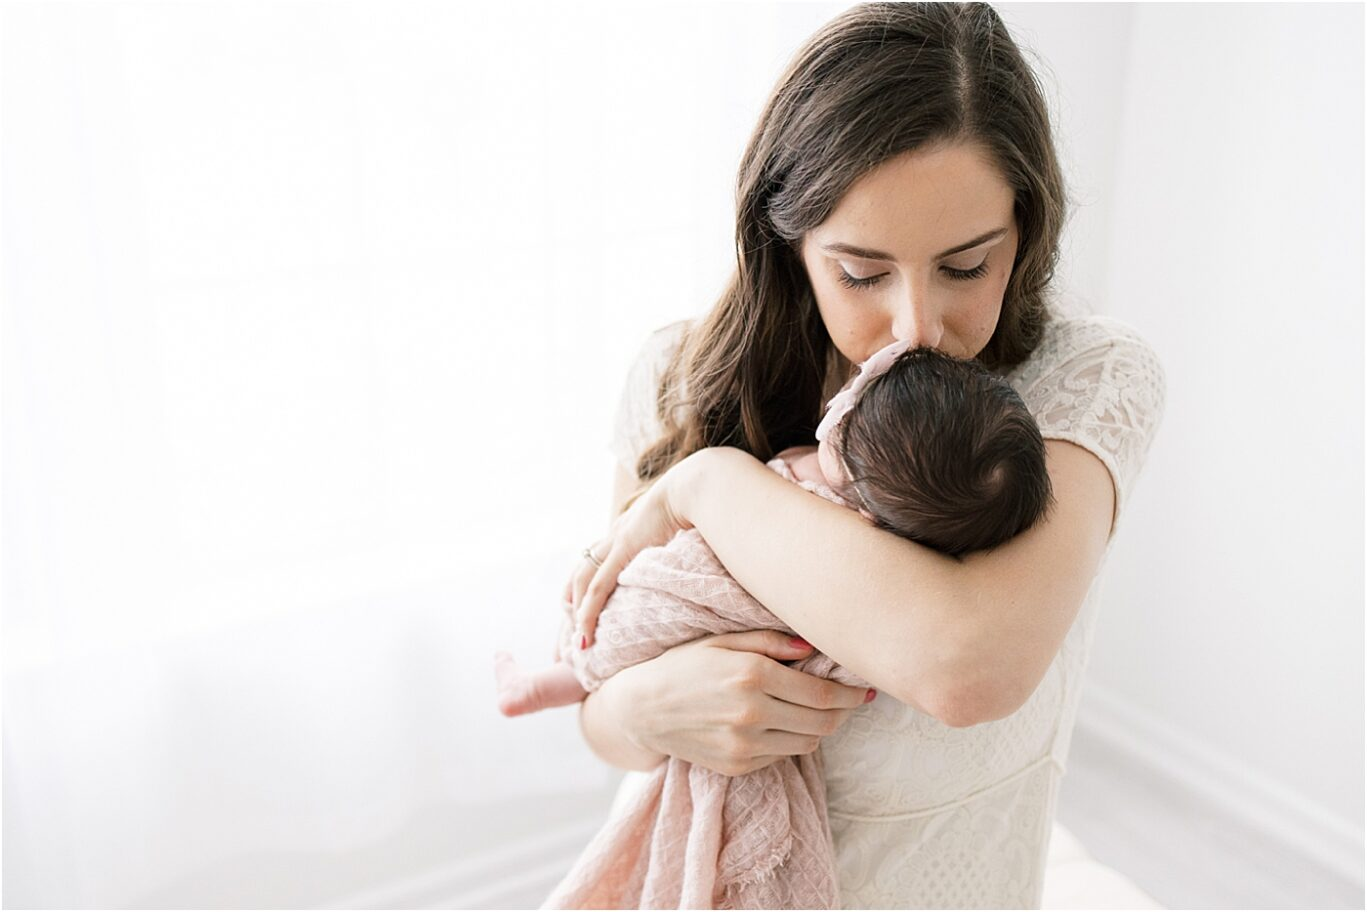 Sweet moment of Mom kissing her baby girl. Photo by Lindsay Konopa Photography.